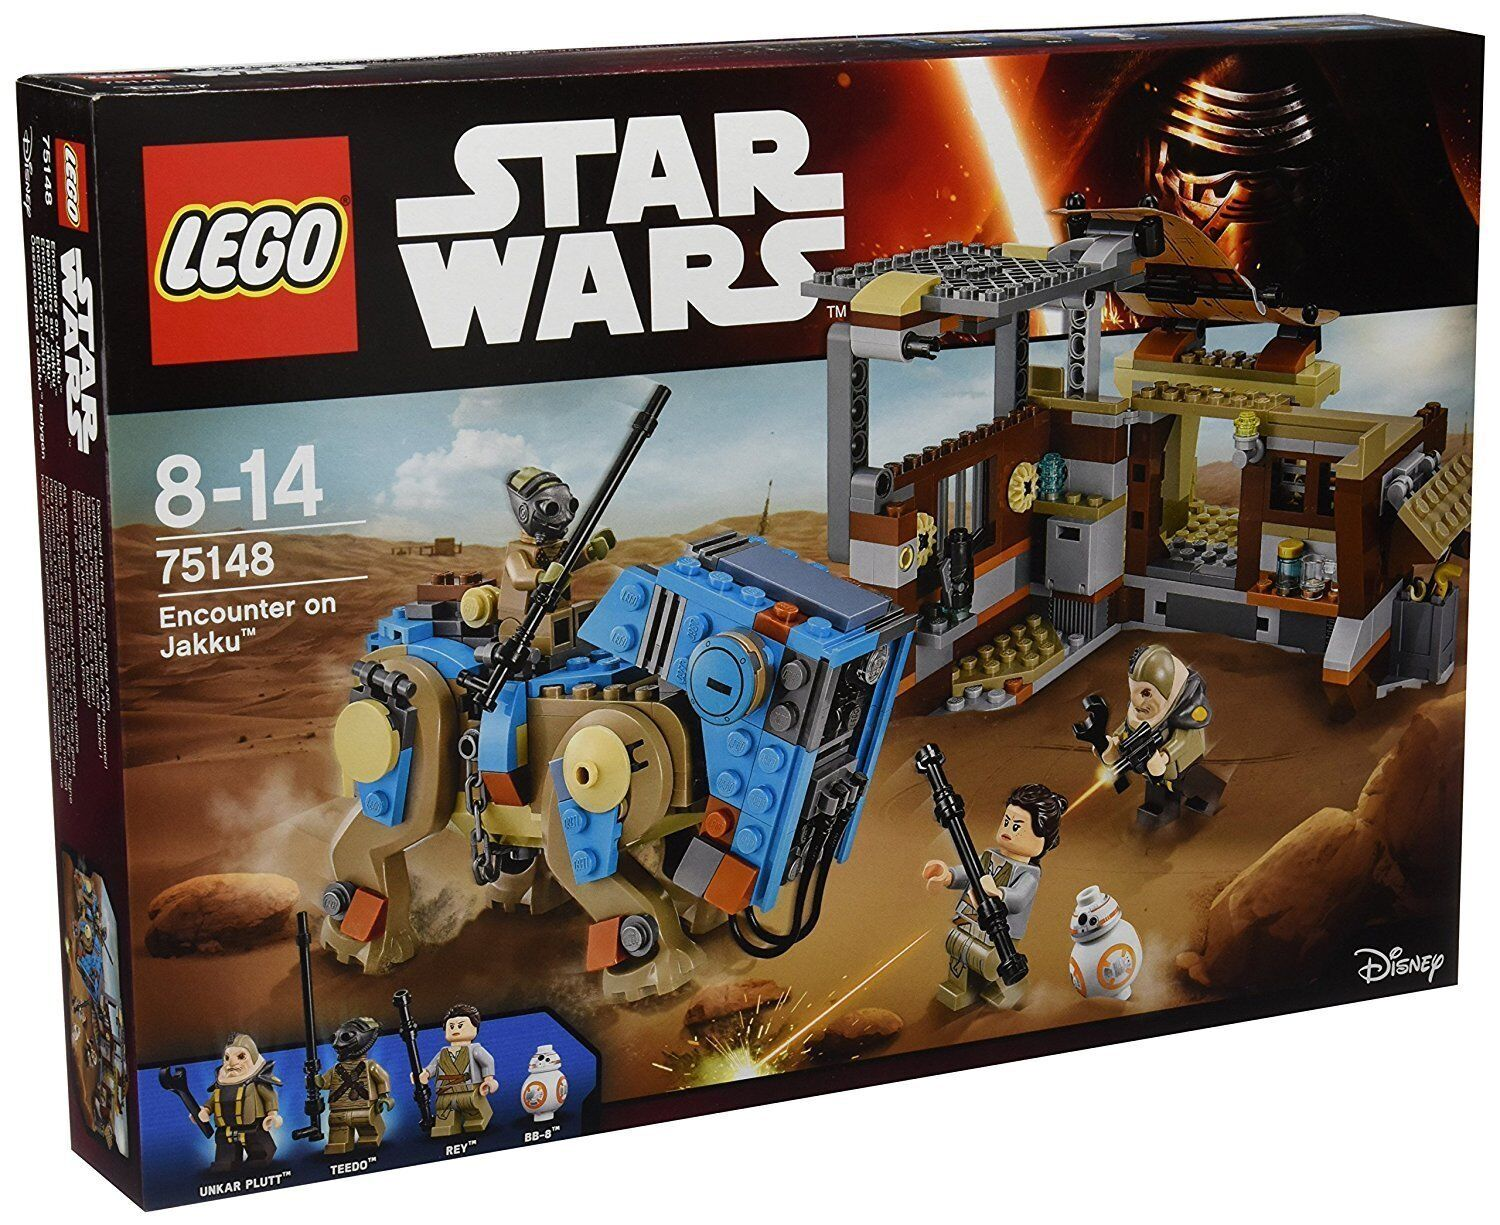 LEGO ® star wars ™ 75148 Encounter on jakku ™ NEUF NEW OVP MISB